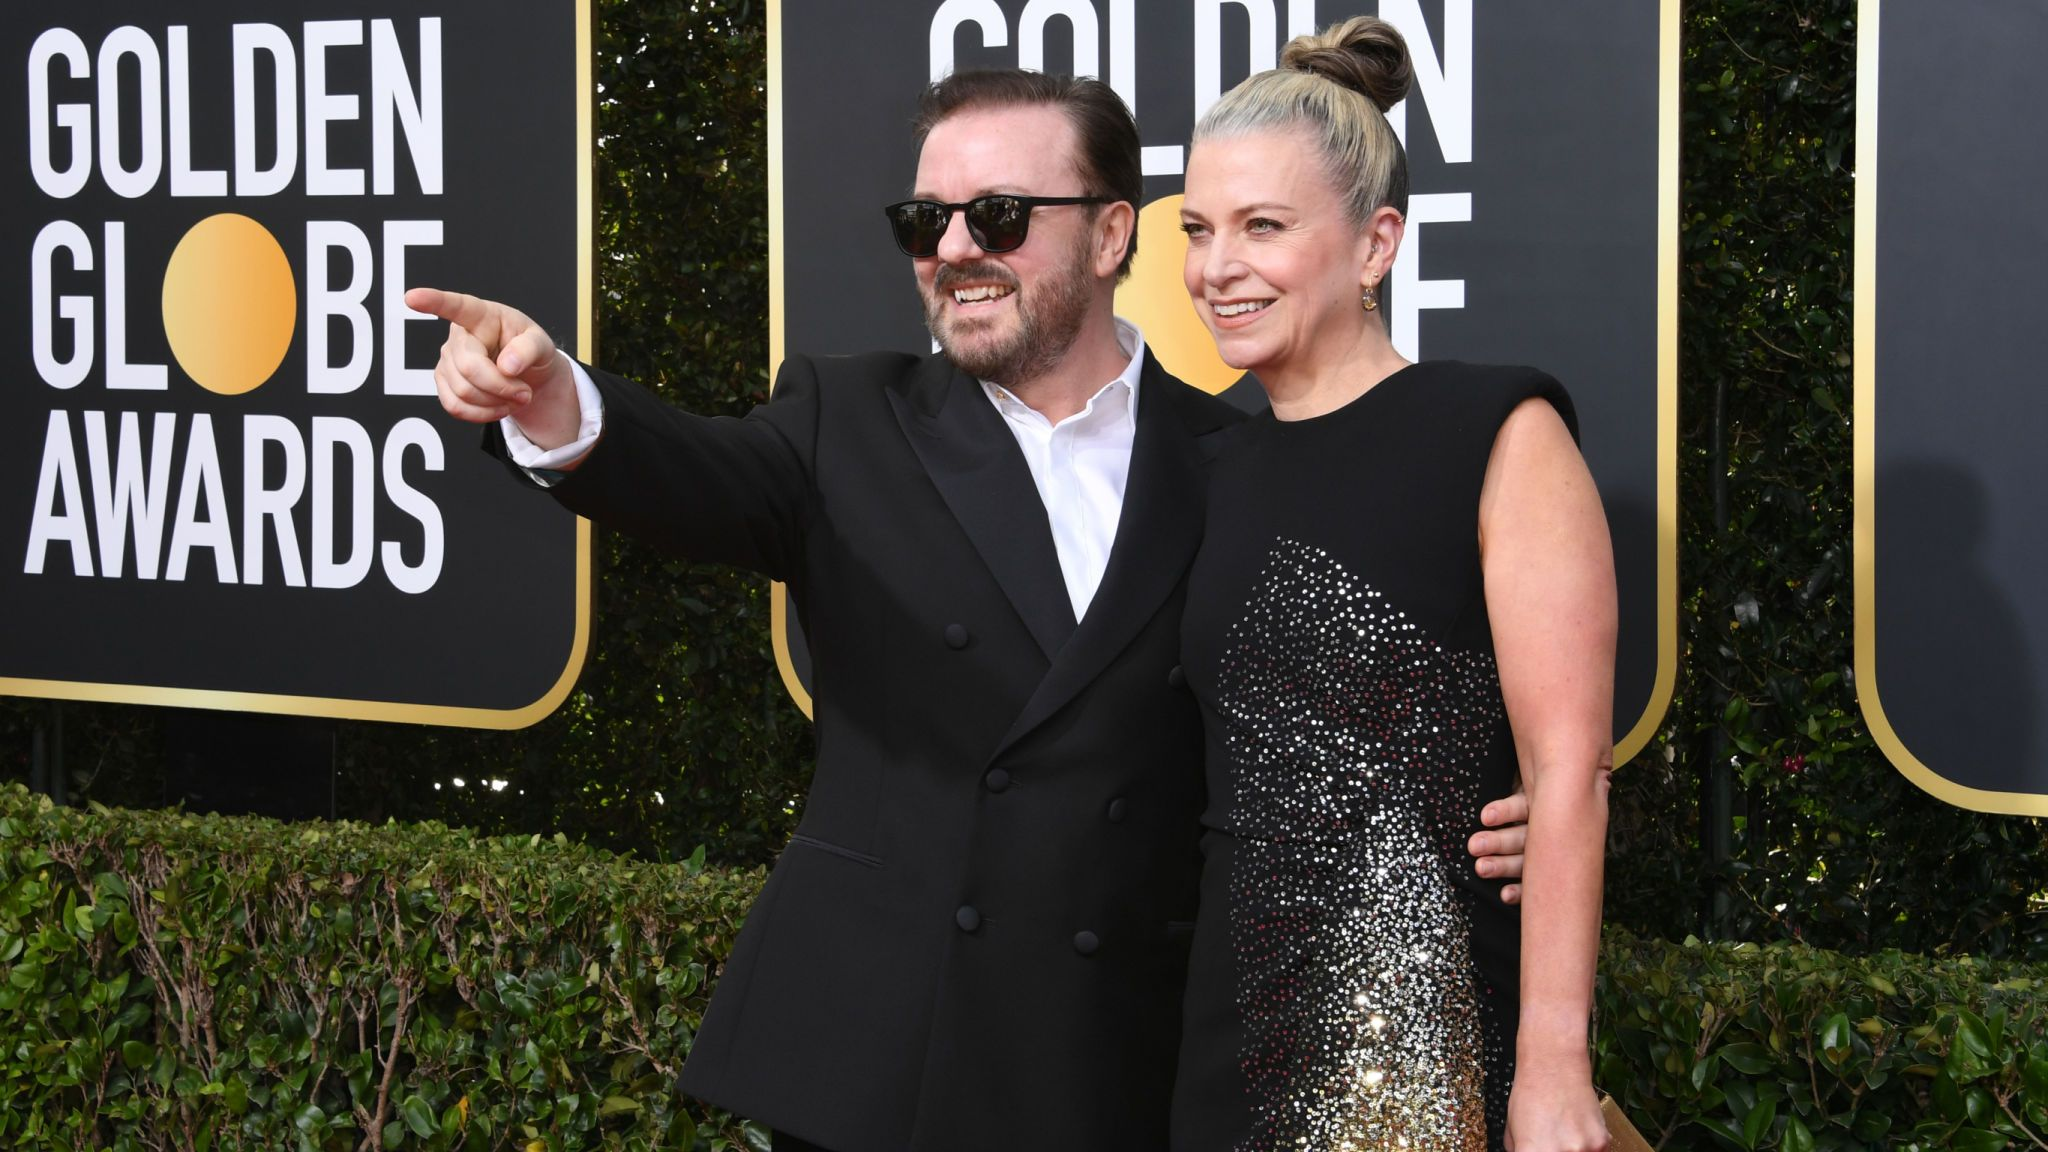 Host Ricky Gervais and Jane Fallon at the Golden Globes 2020